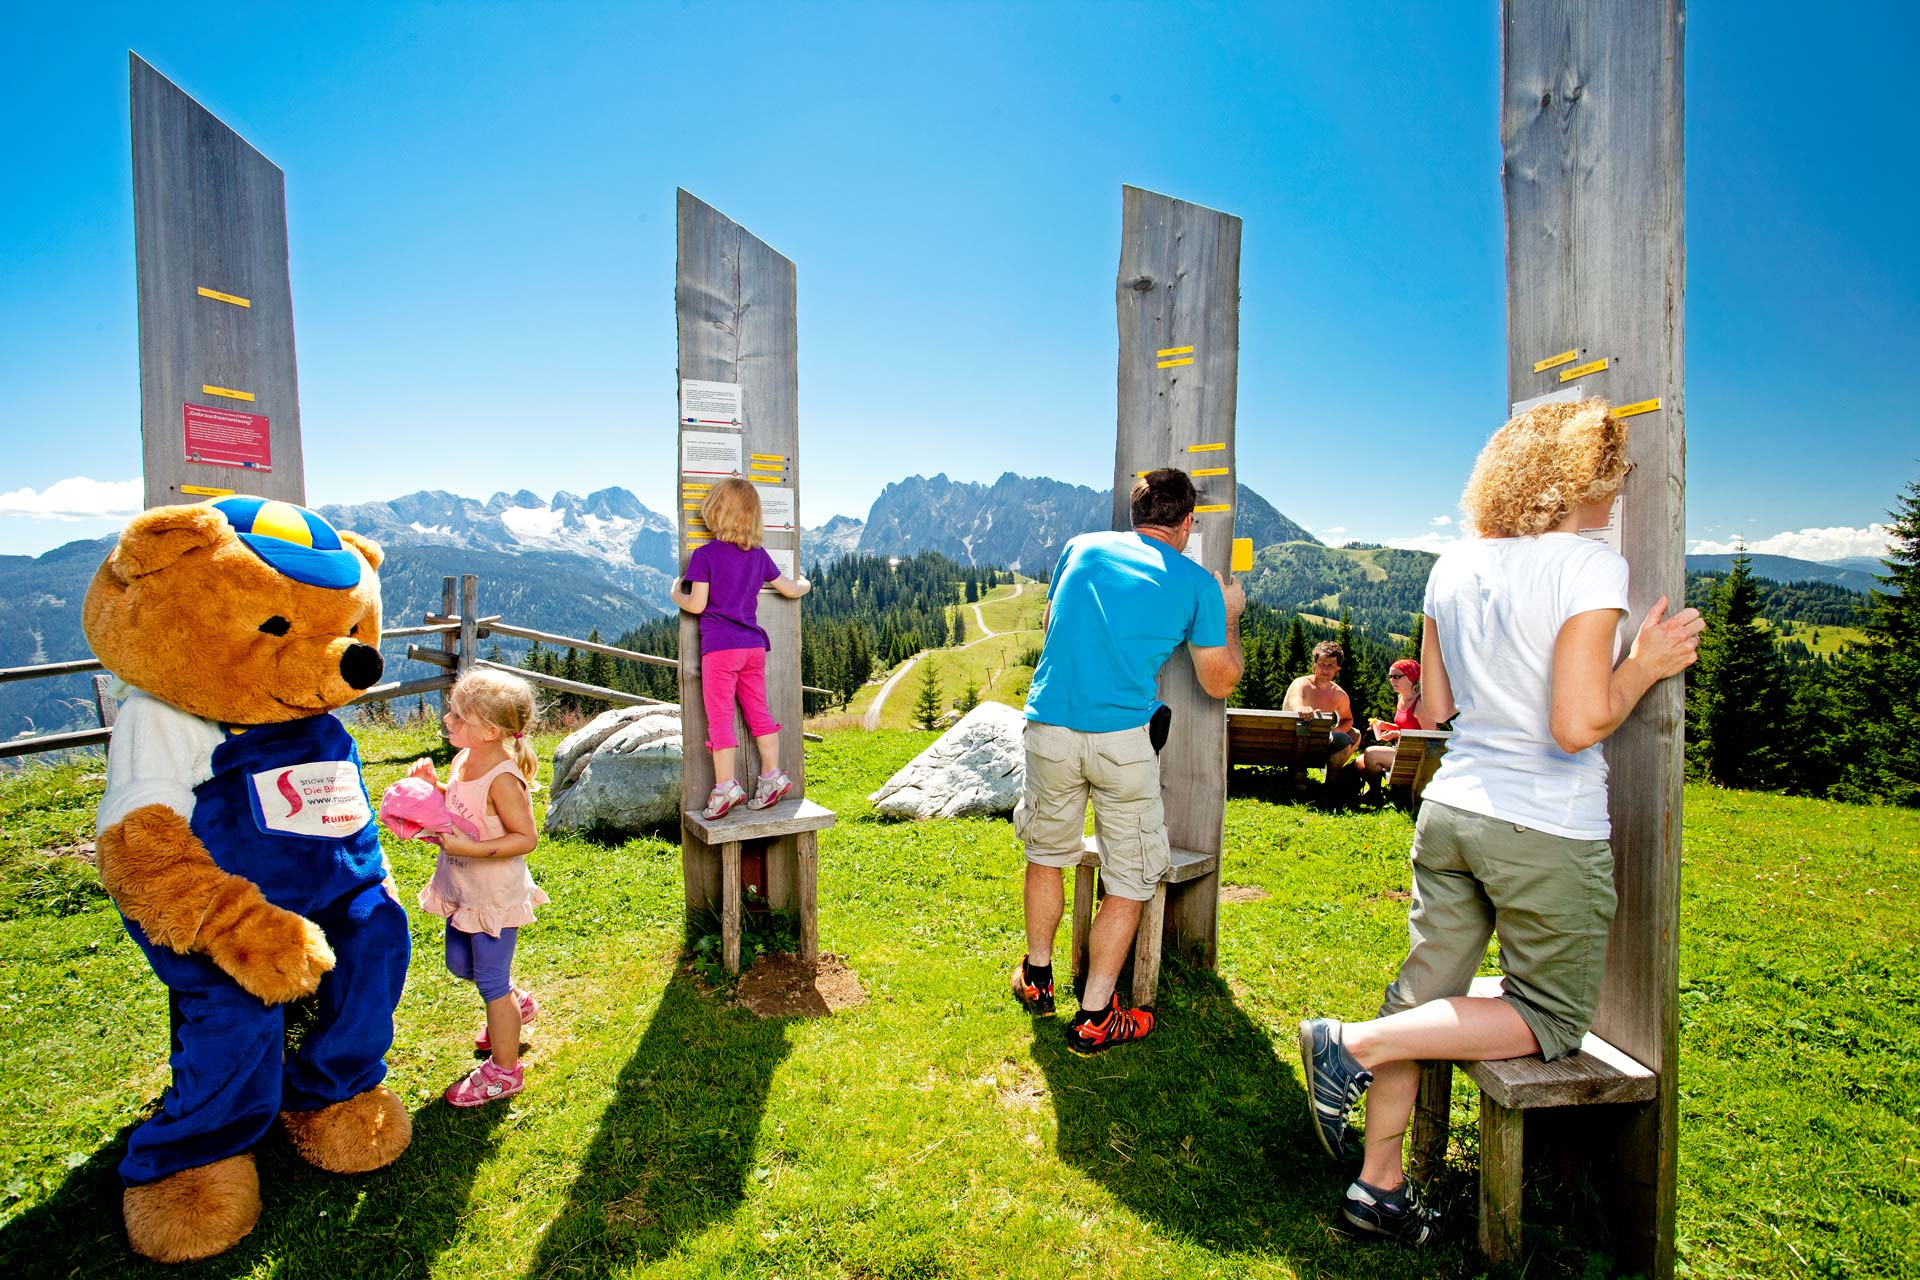 Bruno's world, mountains, games, fun, children, family, Dachstein West, Dachstein, summer, hiking, nature, Salzburg, Austria